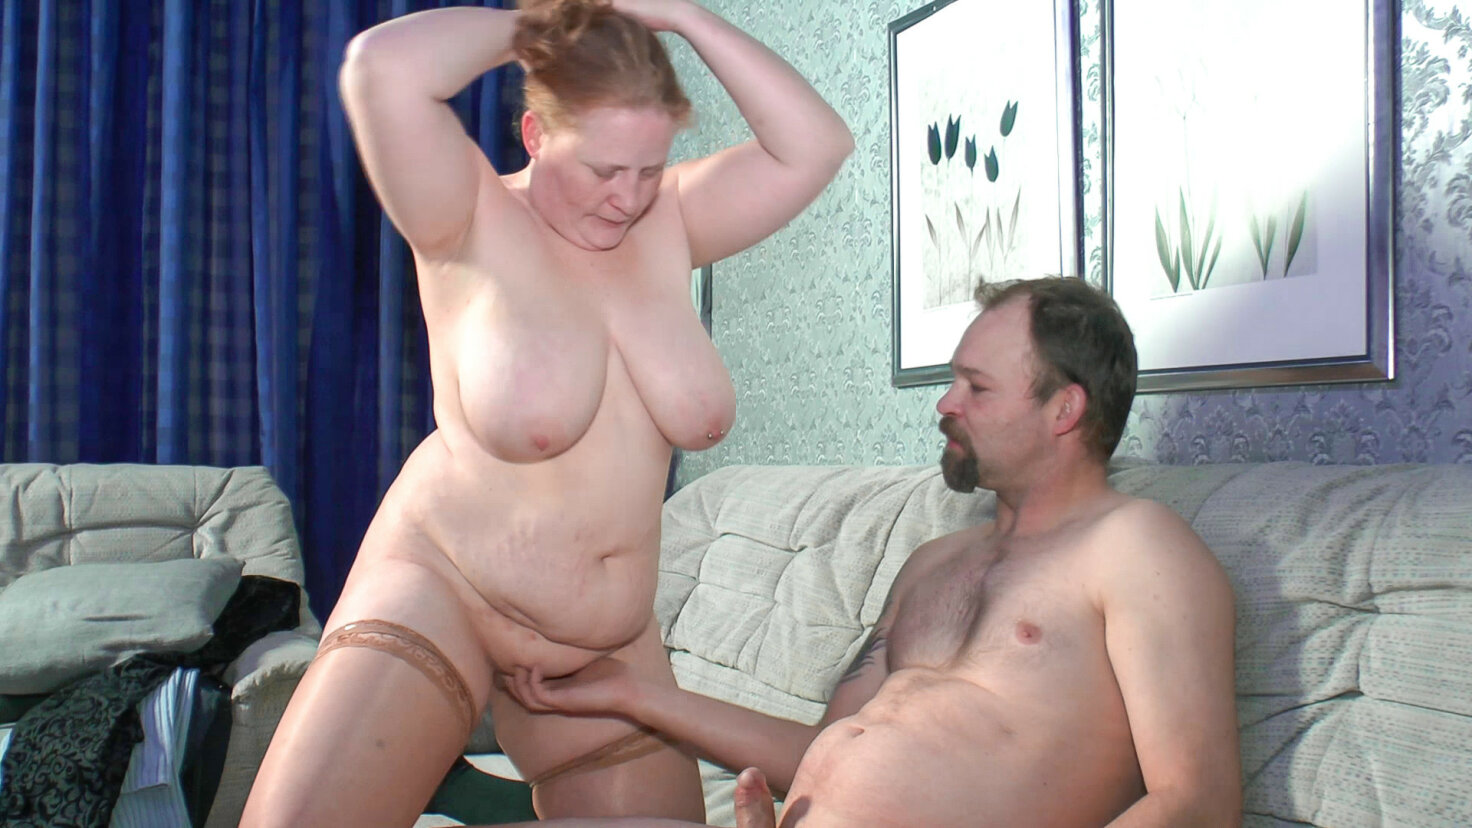 Mature BBW German lady gets drilled and eats cum in hot amateur fuck